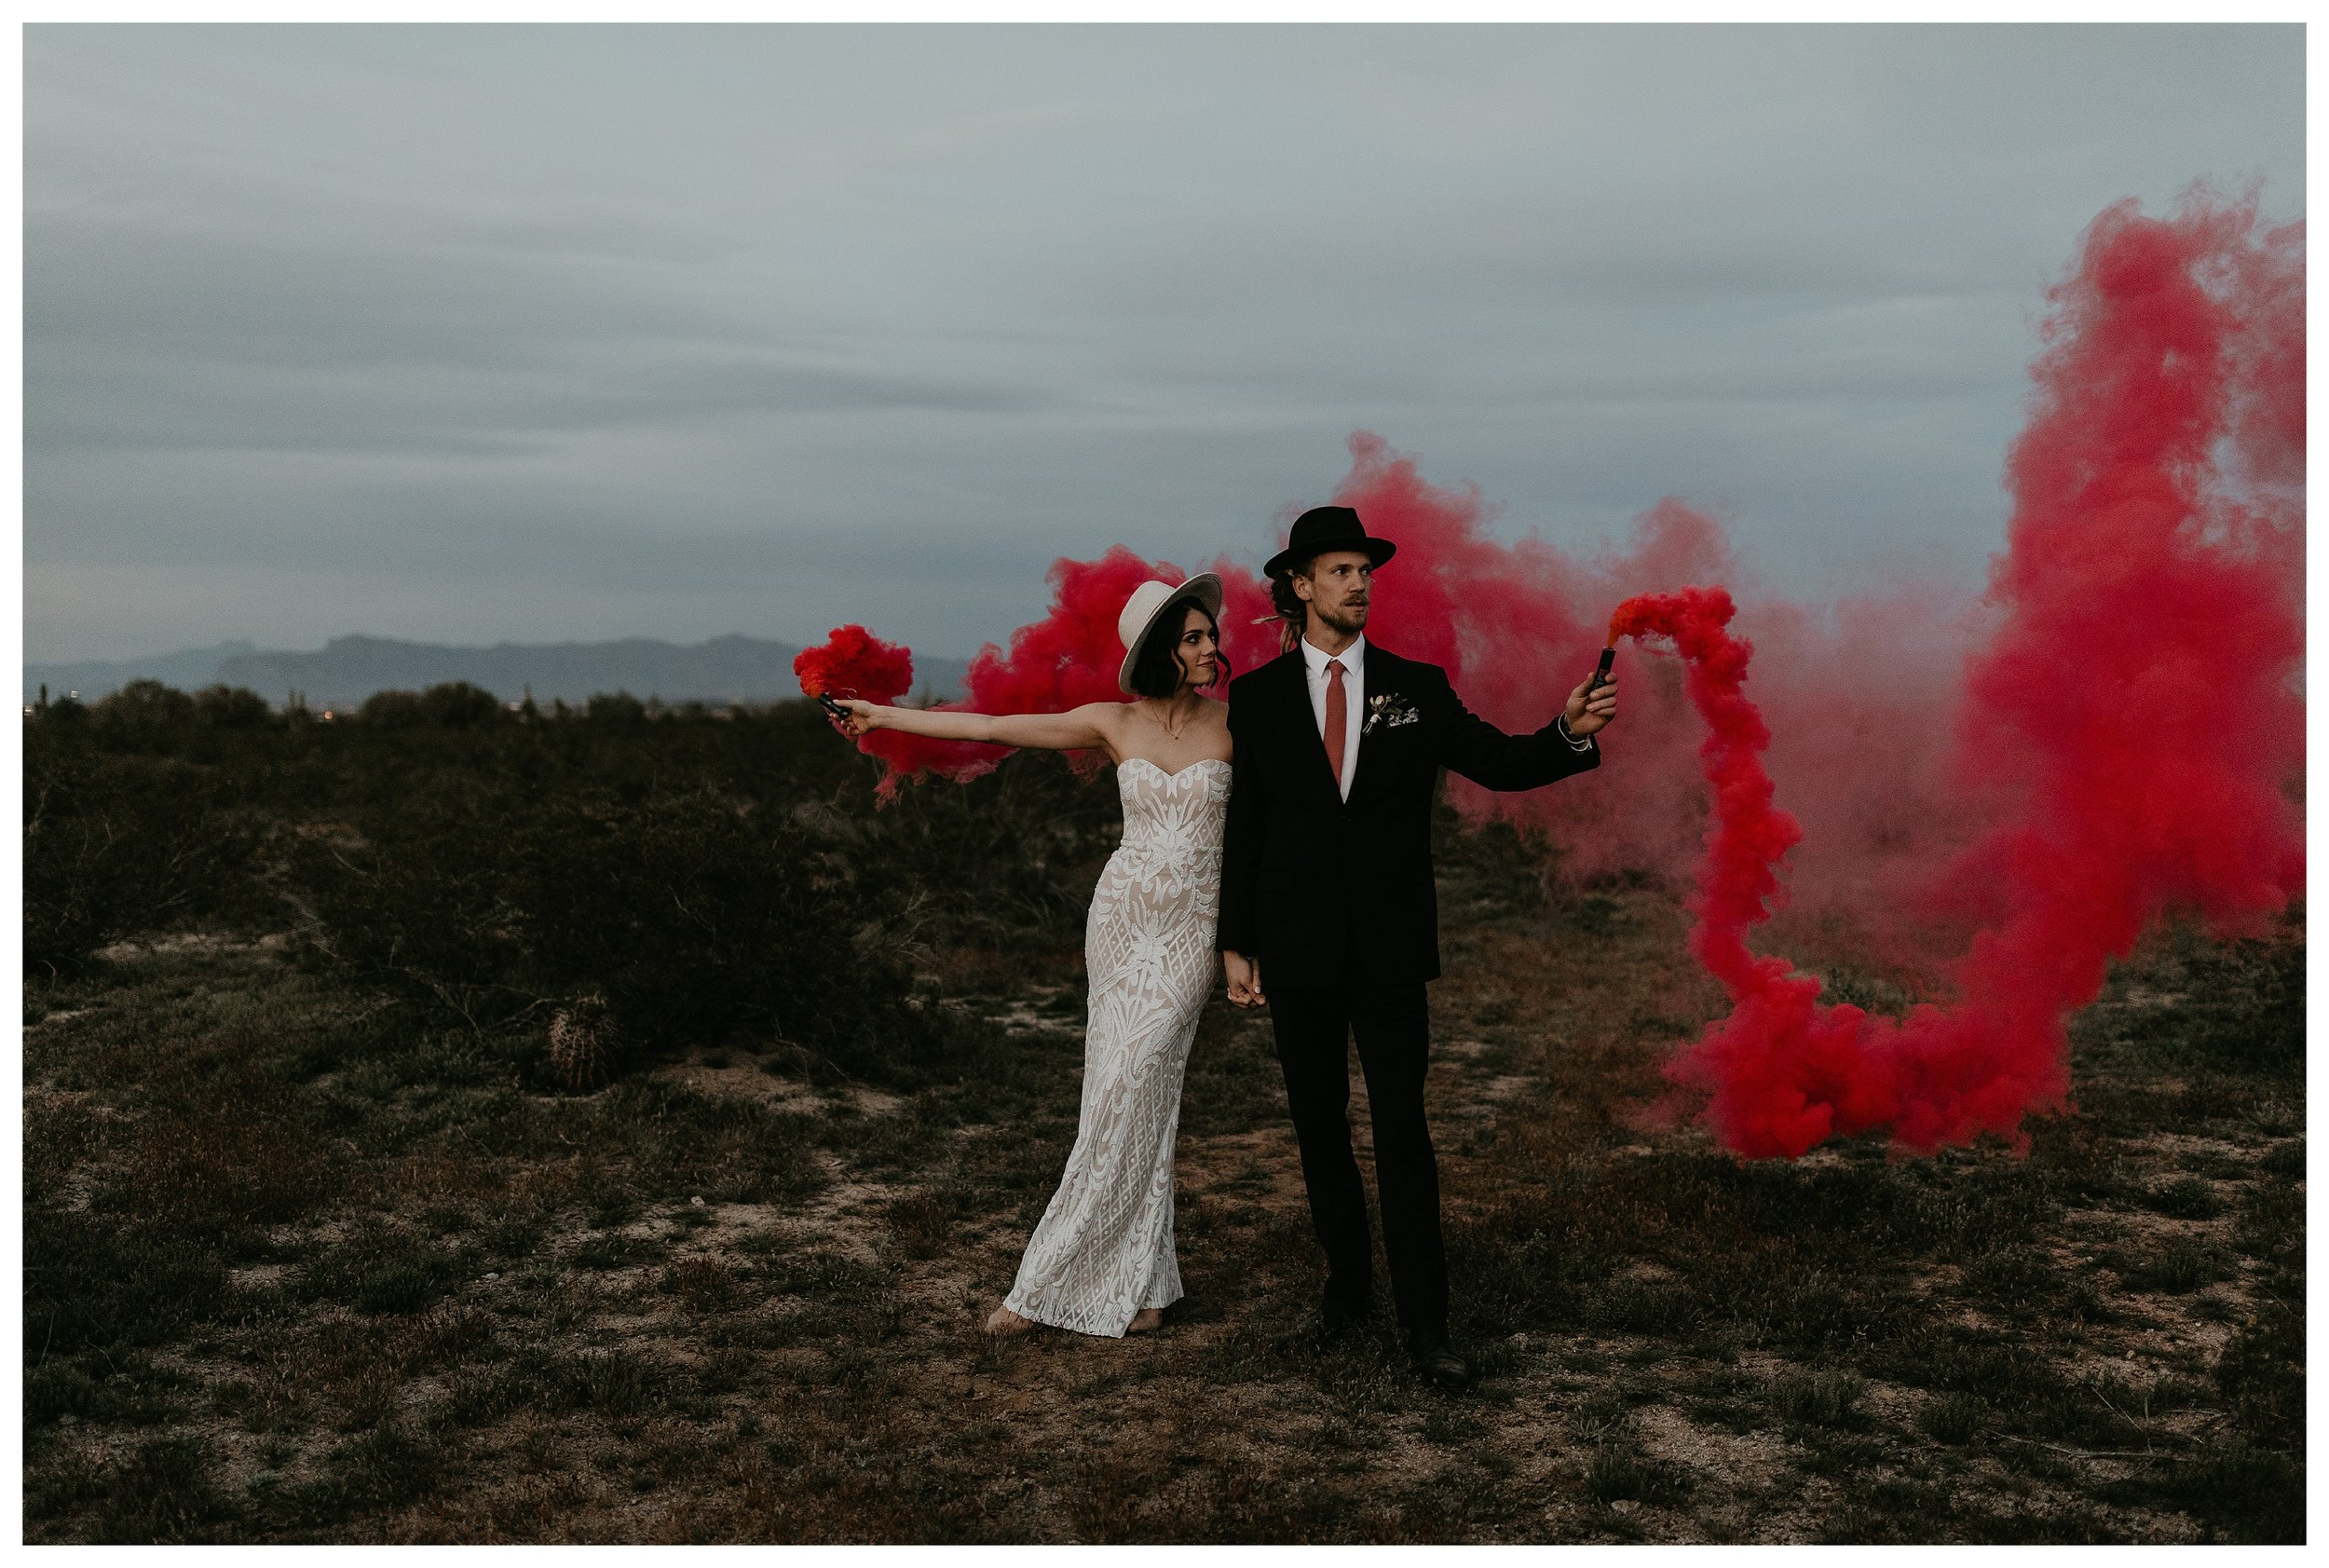 bride and groom red smoke bomb portraits in the desert at sunset